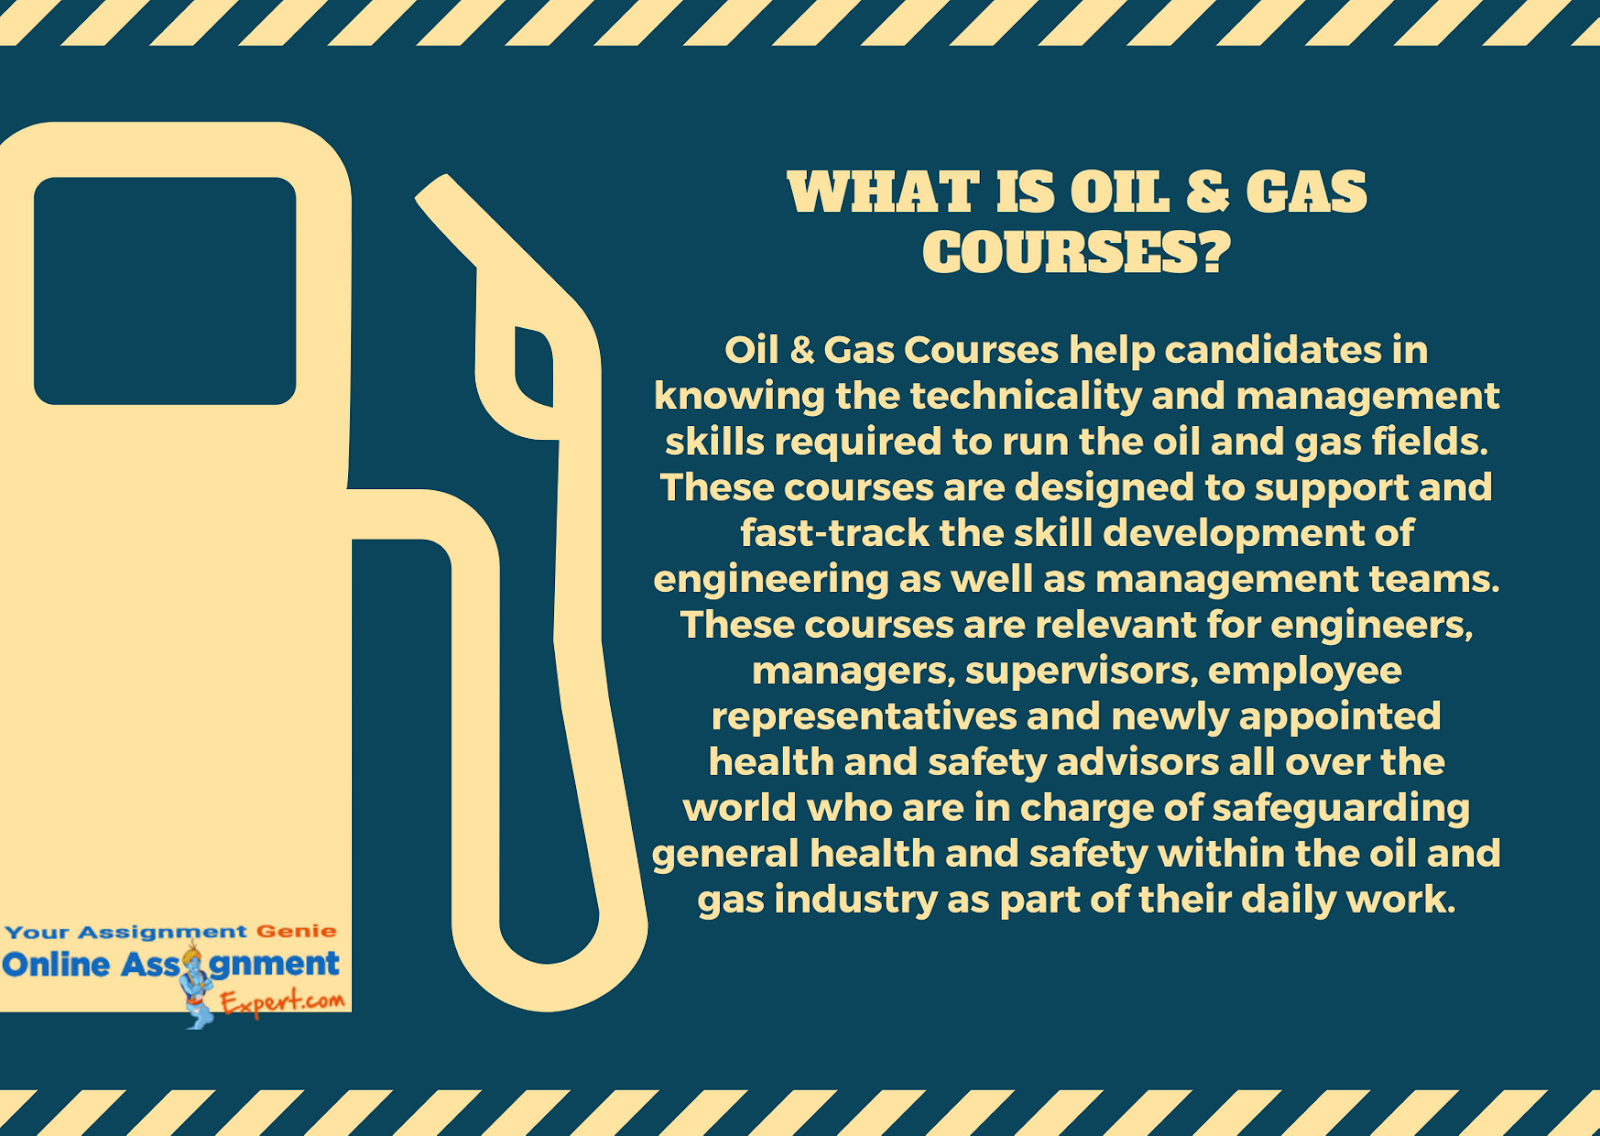 oil and gas courses